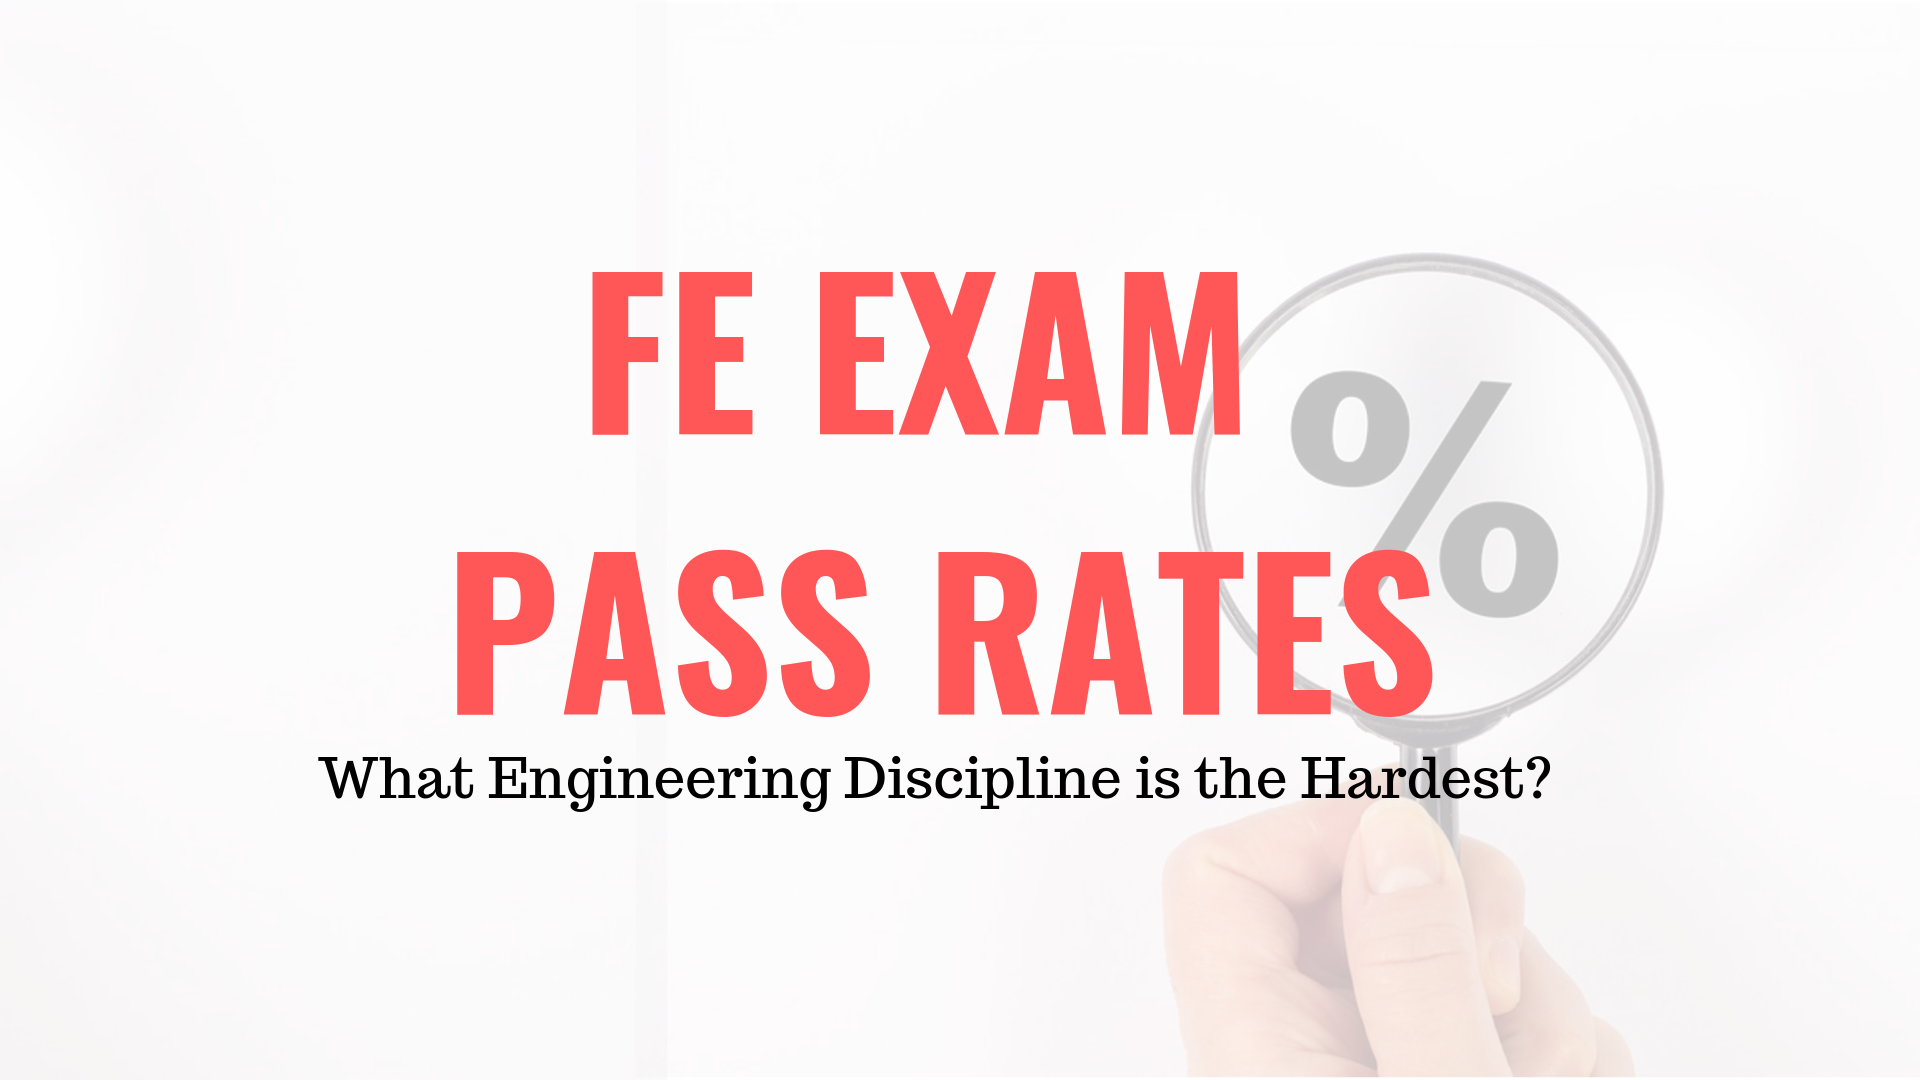 FE Exam Pass Rates